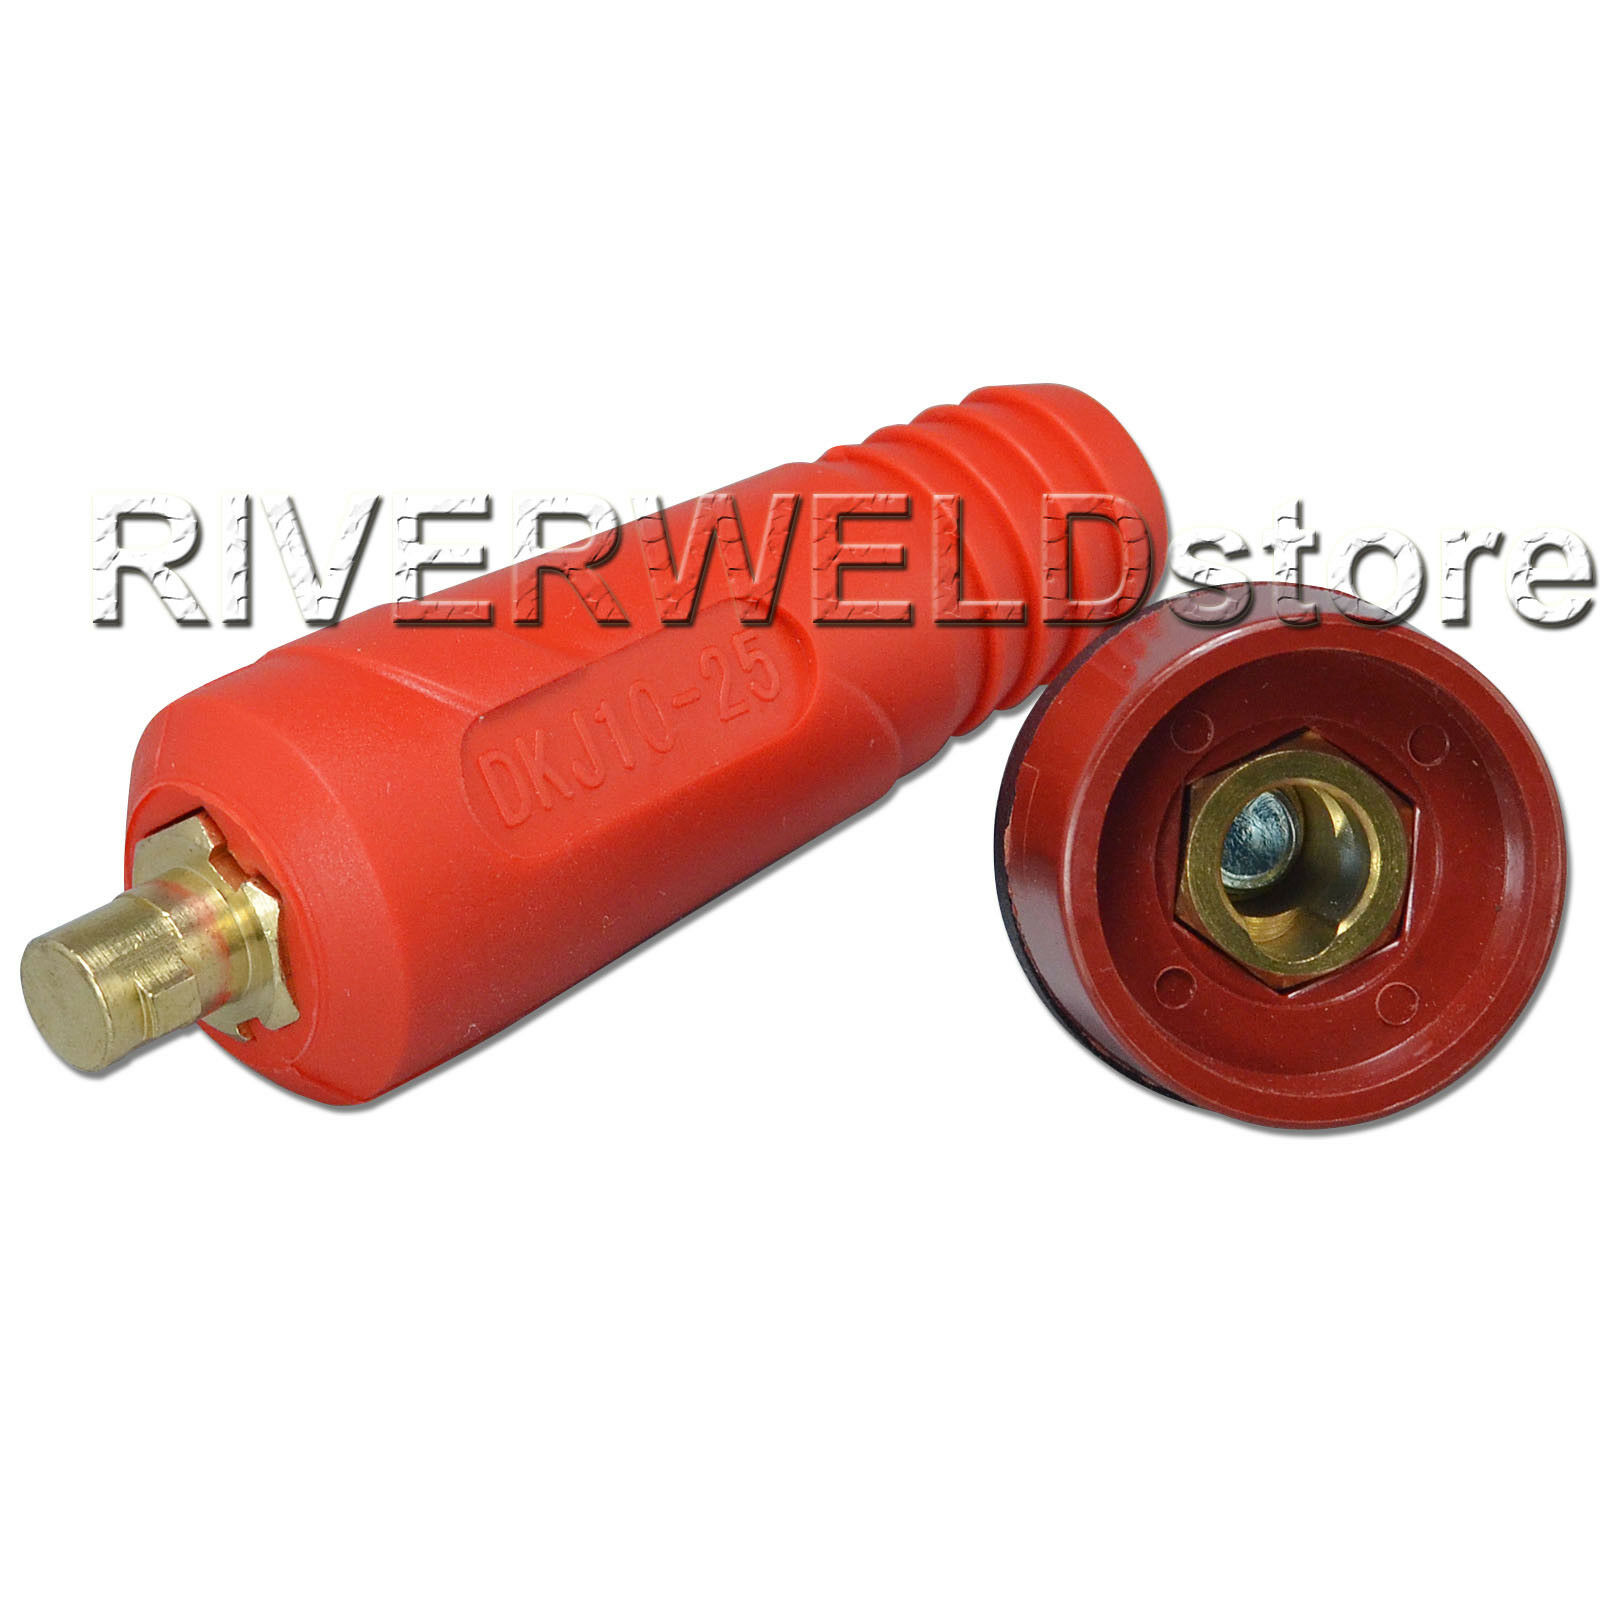 TIG Welding Cable Panel Connector-plug DKJ10-25 200Amp Dinse Quick Fitting Red and Black Color 4pcs